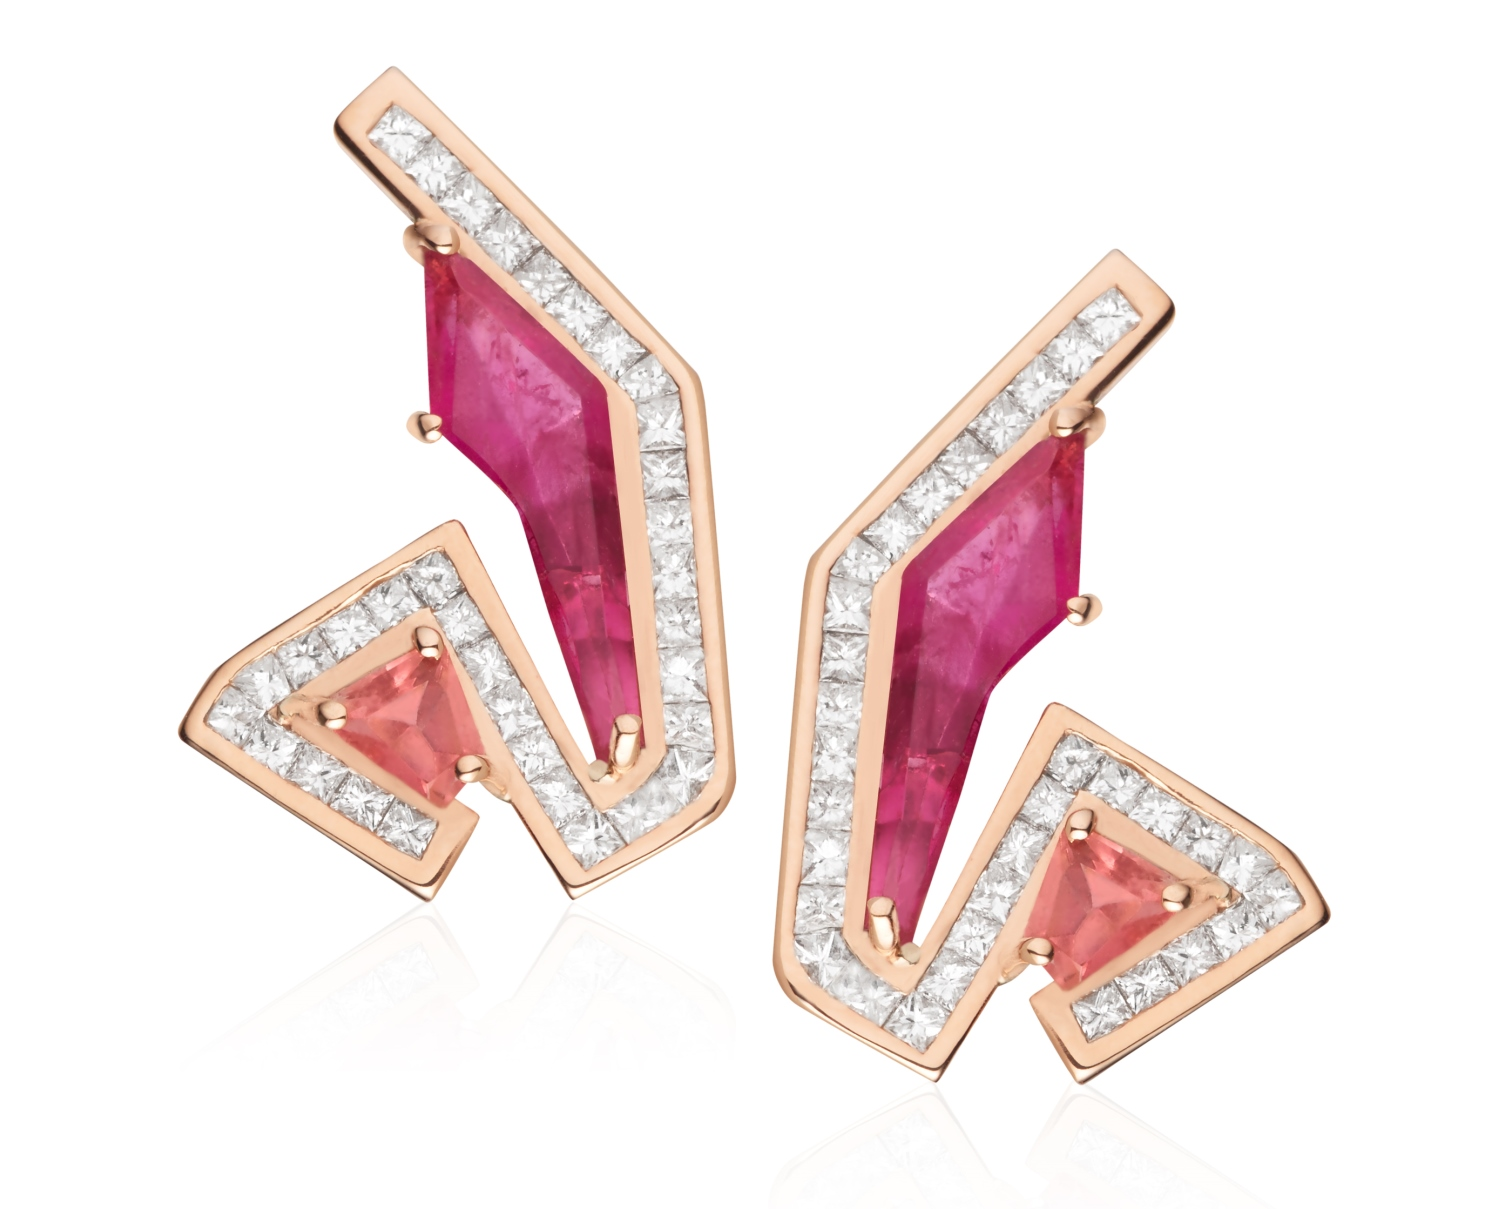 Marcia Budet's earrings in 18K yellow gold with amethyst, pink tourmaline, and diamond baguettes, feature bold shapes and vibrant colors. Seen in in Lapidary Journal Jewelry Artist September/October 2018; photo courtesy Marcia Budet